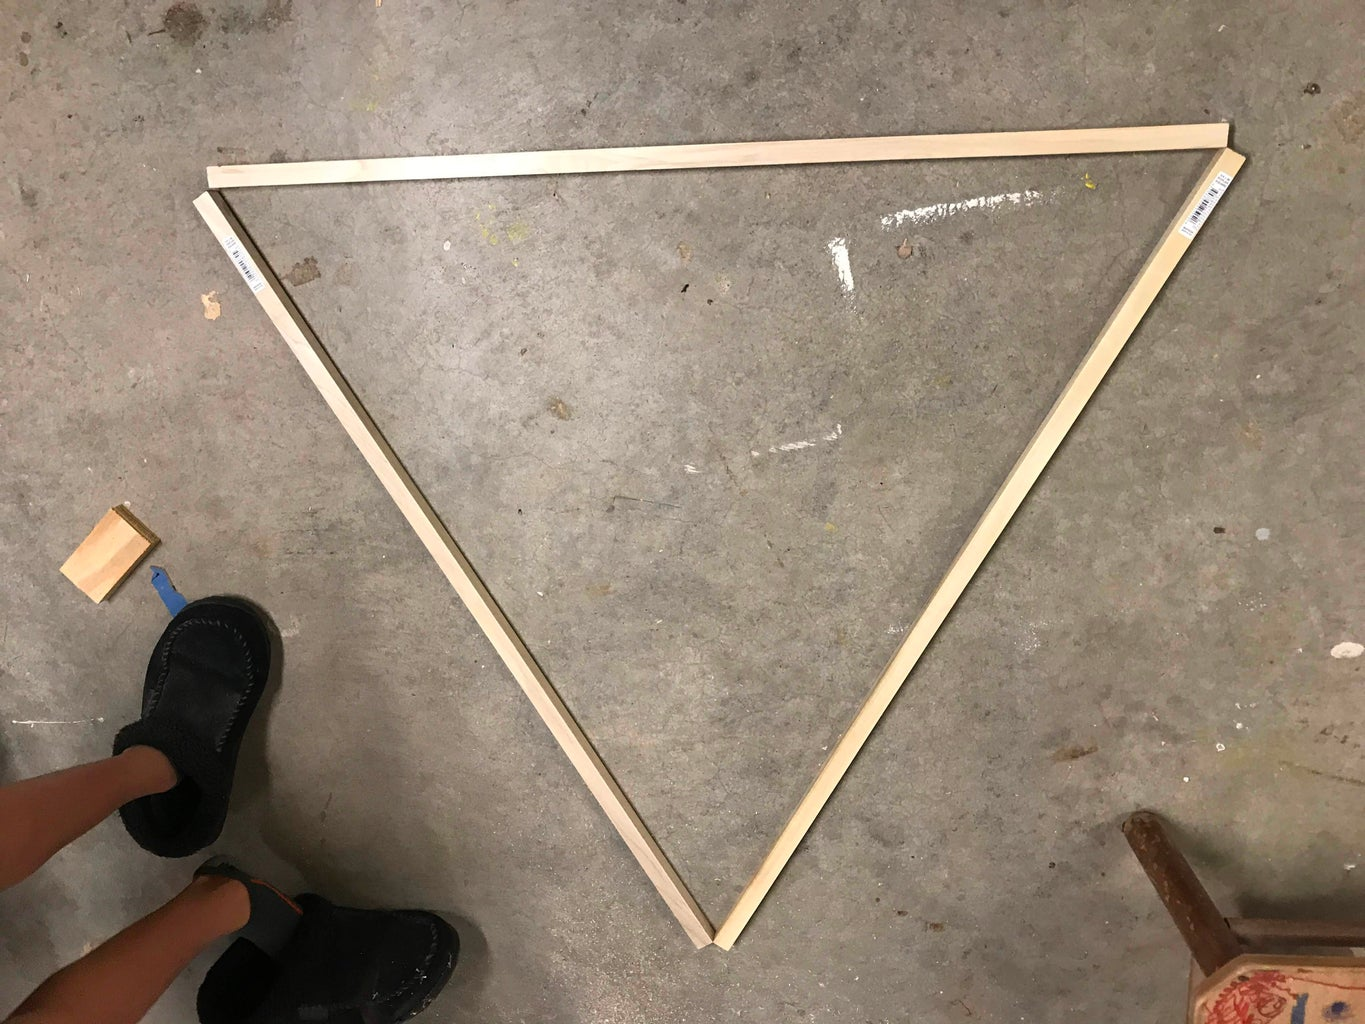 Mark and Cut the Triangle